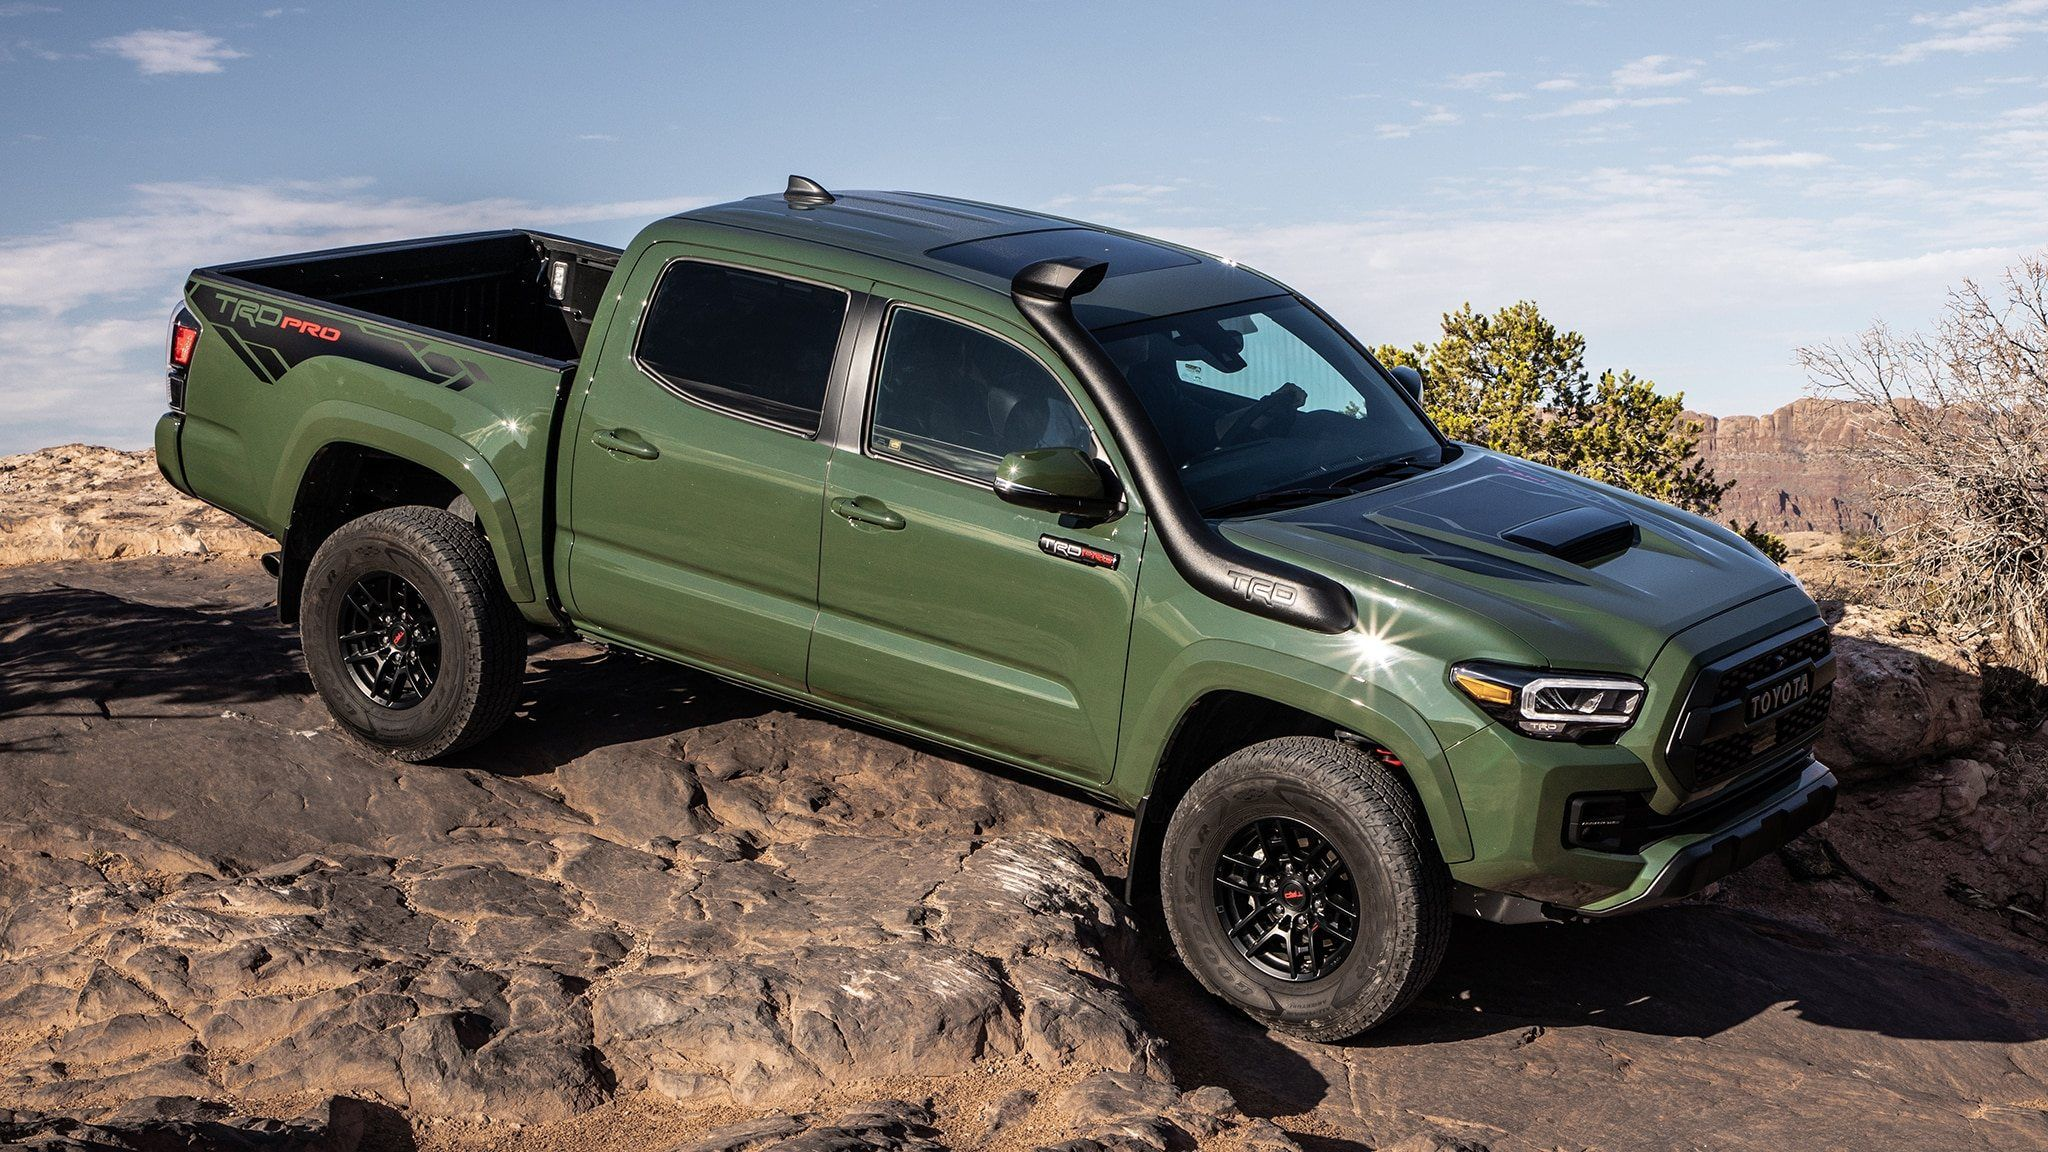 2020 Toyota Tacoma Diesel Trd Pro Redesign and Concept